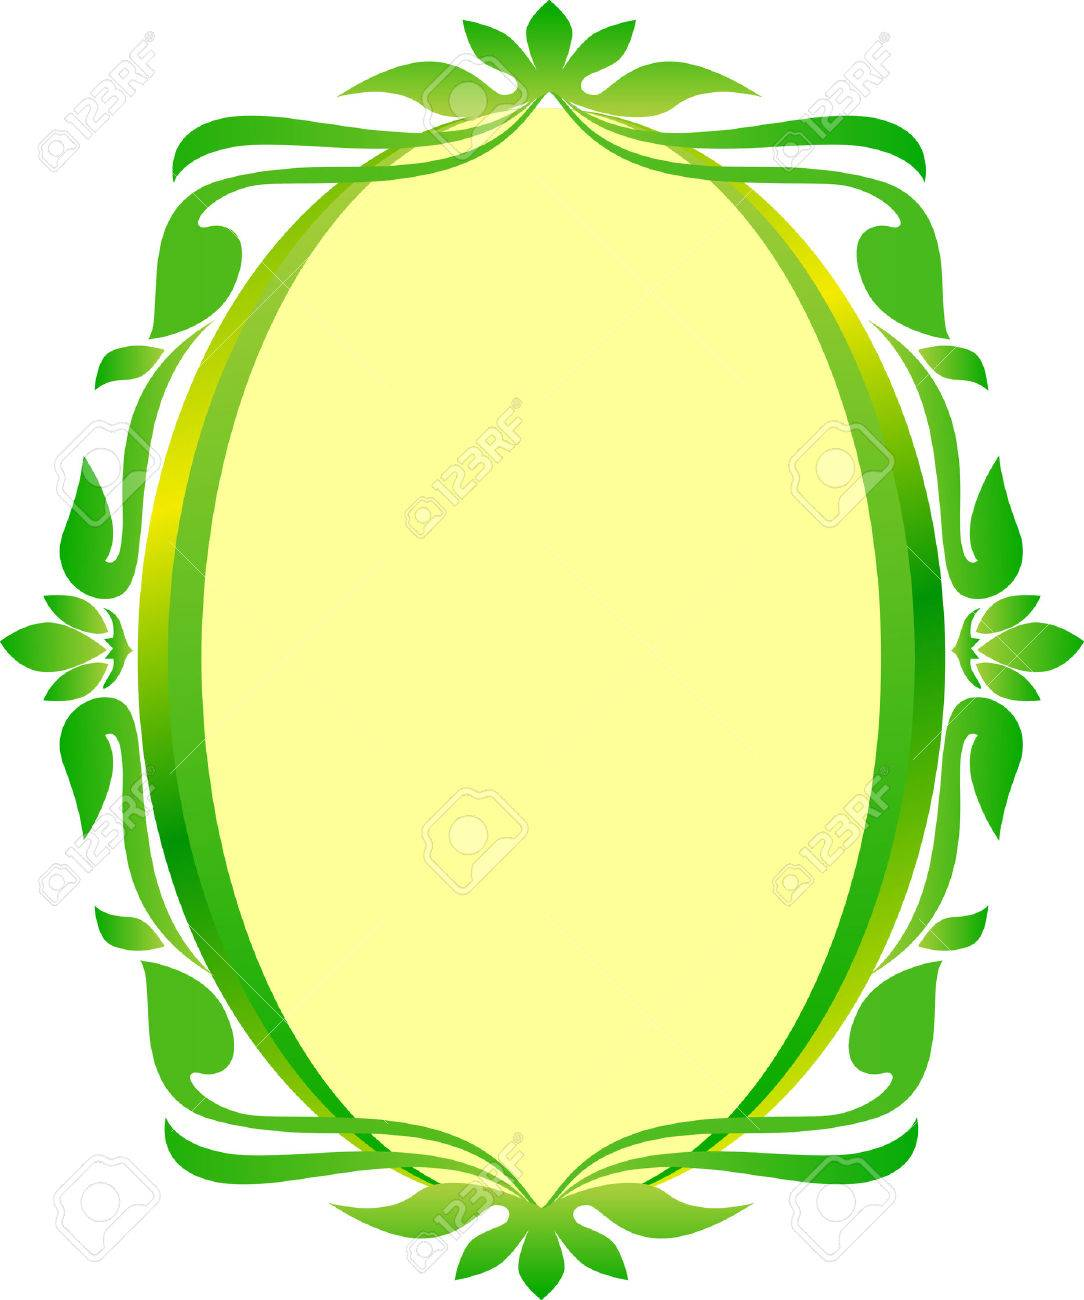 Green Gold Oval Frame Floral Wedding Royalty Free Cliparts Vectors